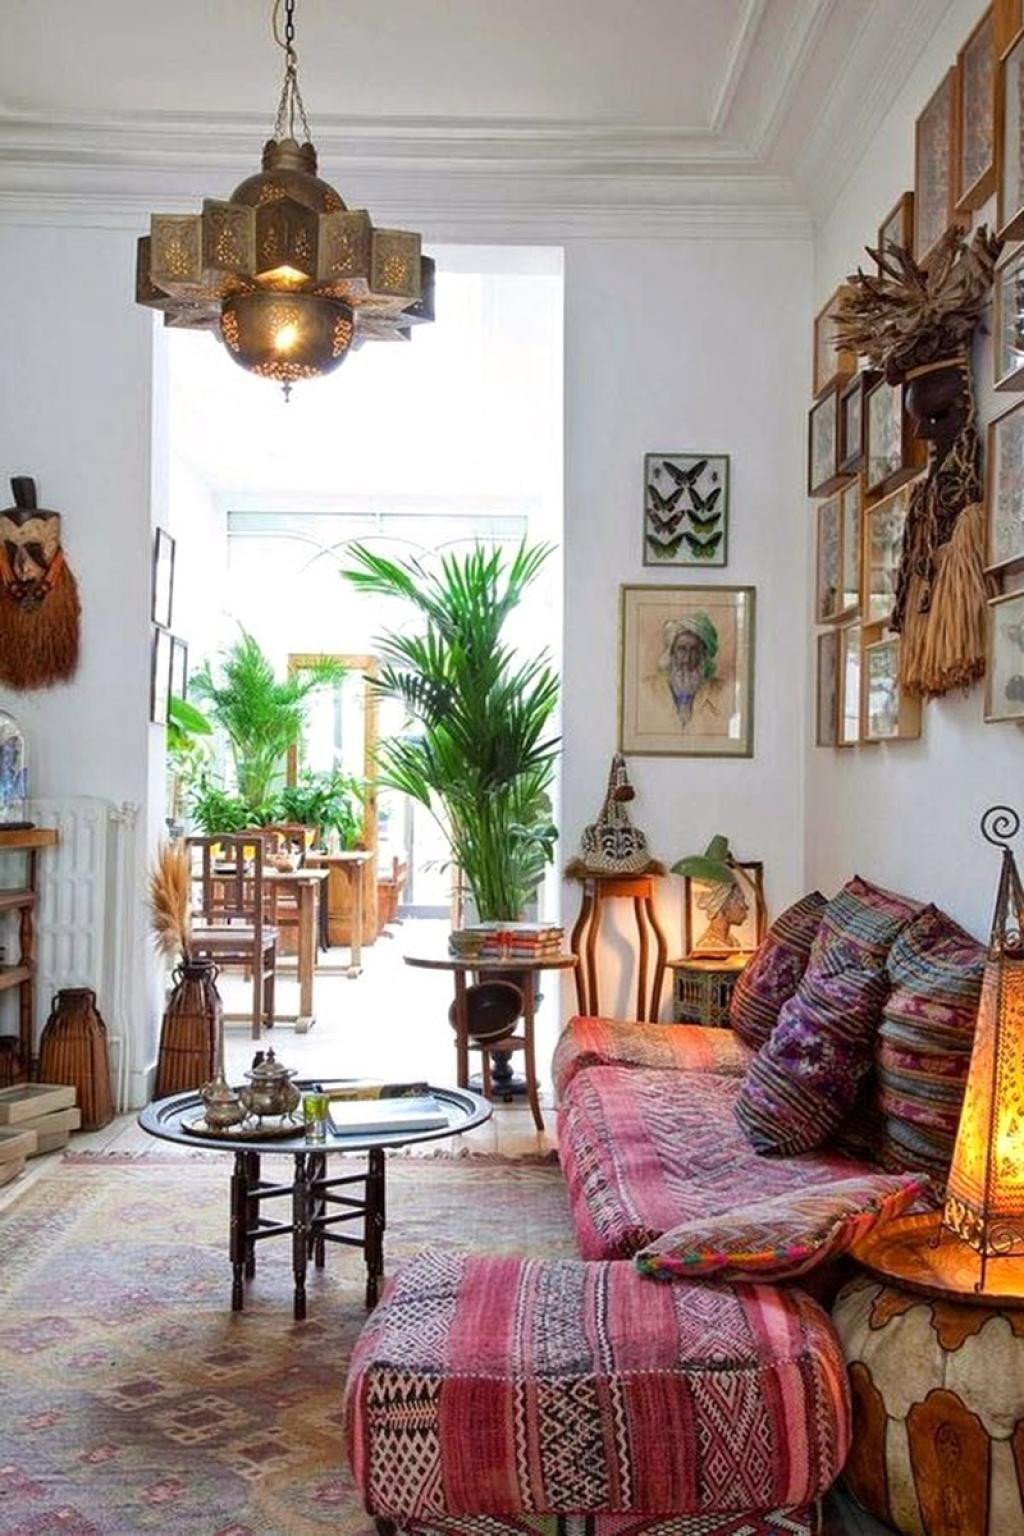 Small Bohemian Living Room Ideas Inspirational 31 Best Bohemian Interior Design Ideas